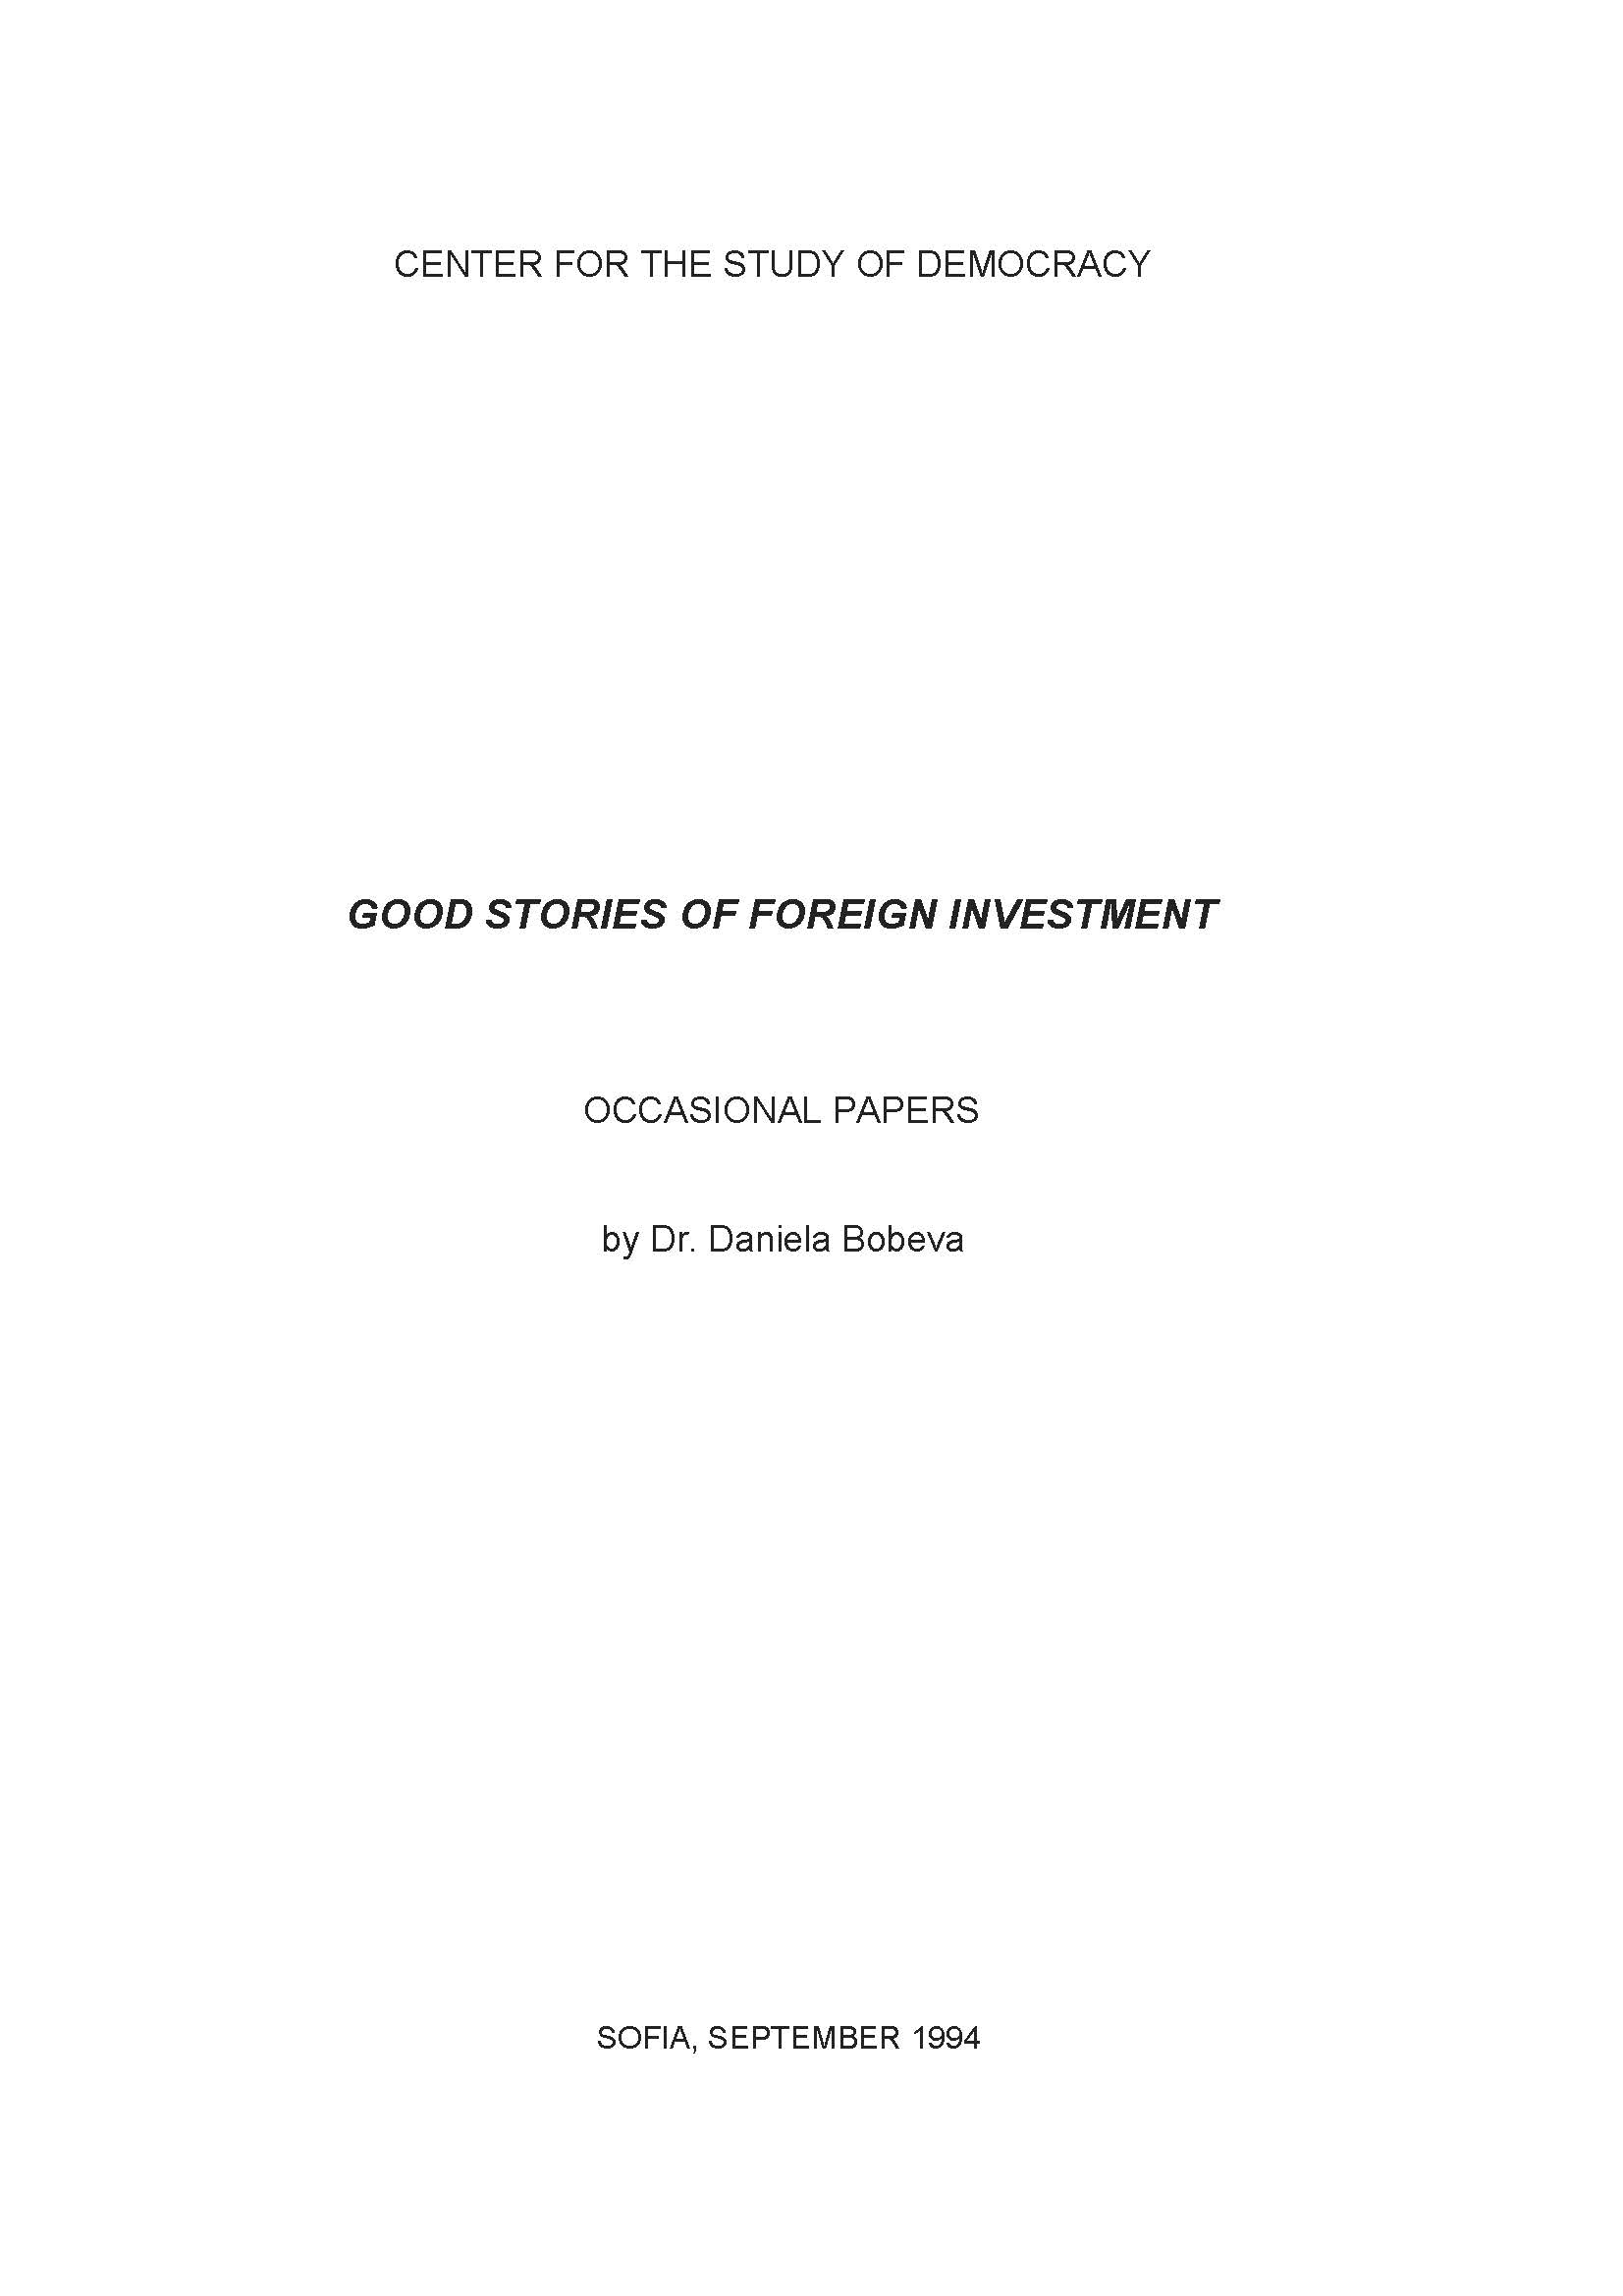 Good Stories of Foreign Investment